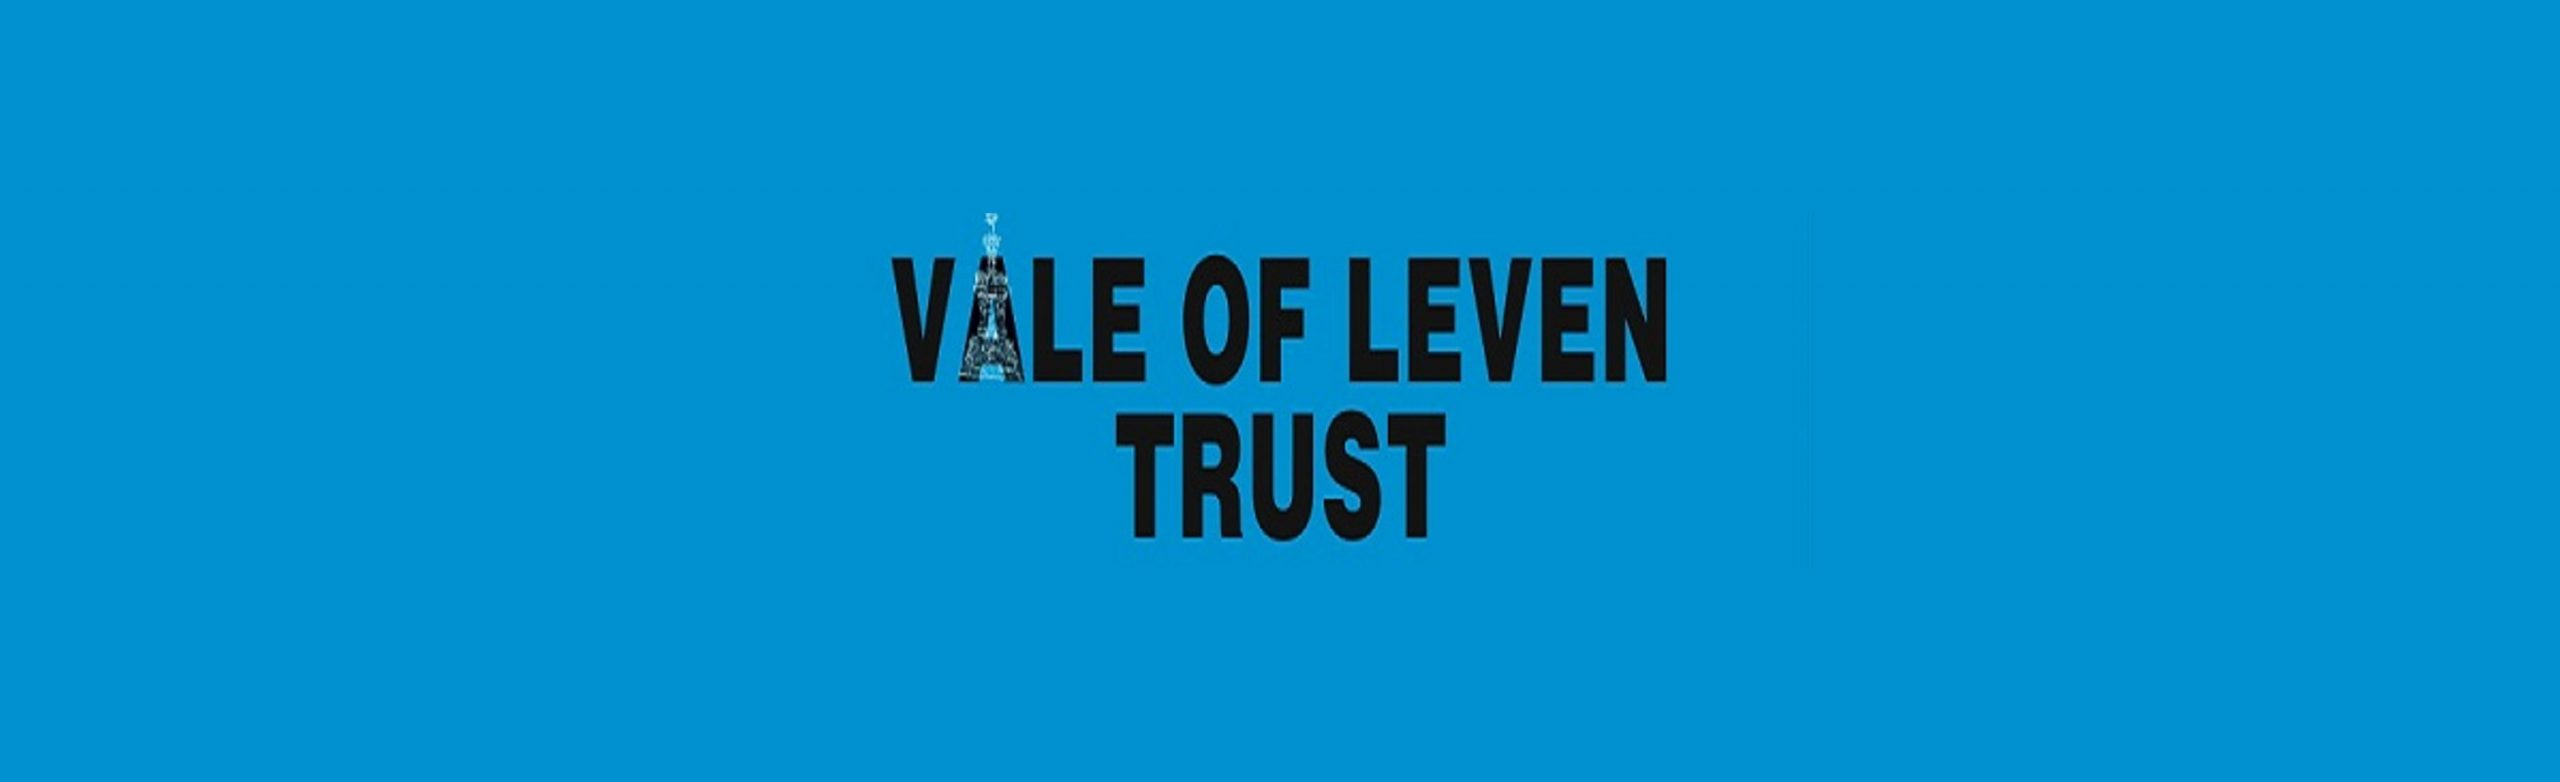 Vale of Leven Trust